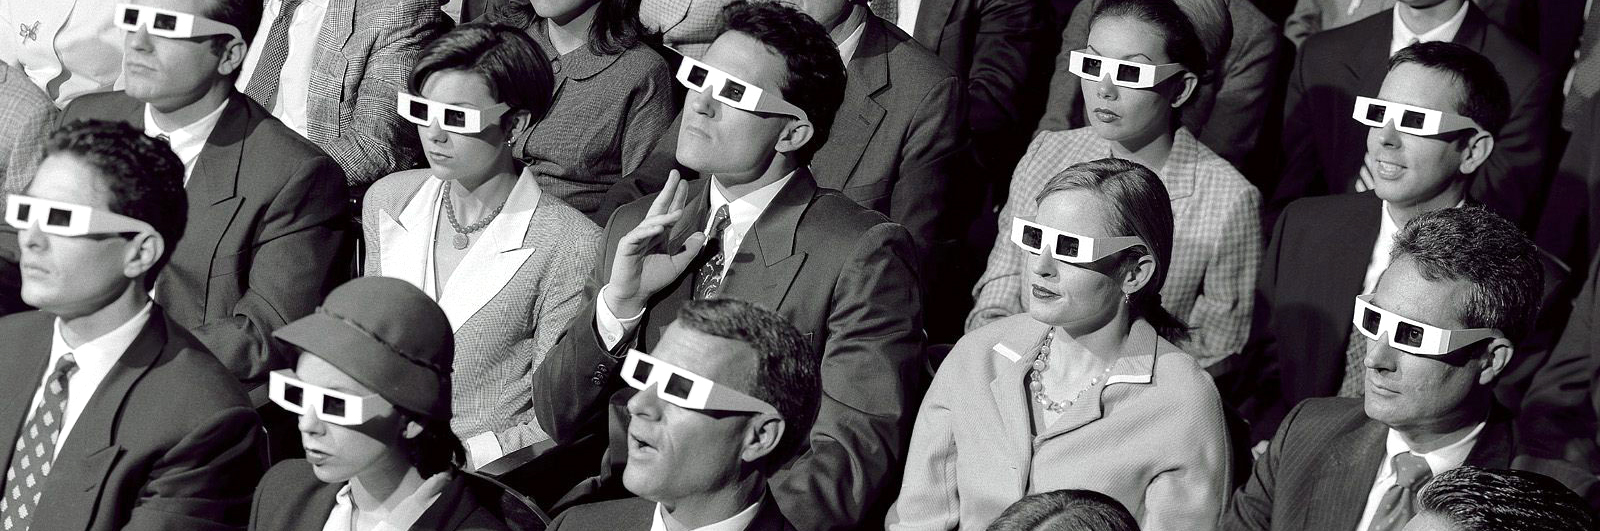 audience-with-3d-glasses 2